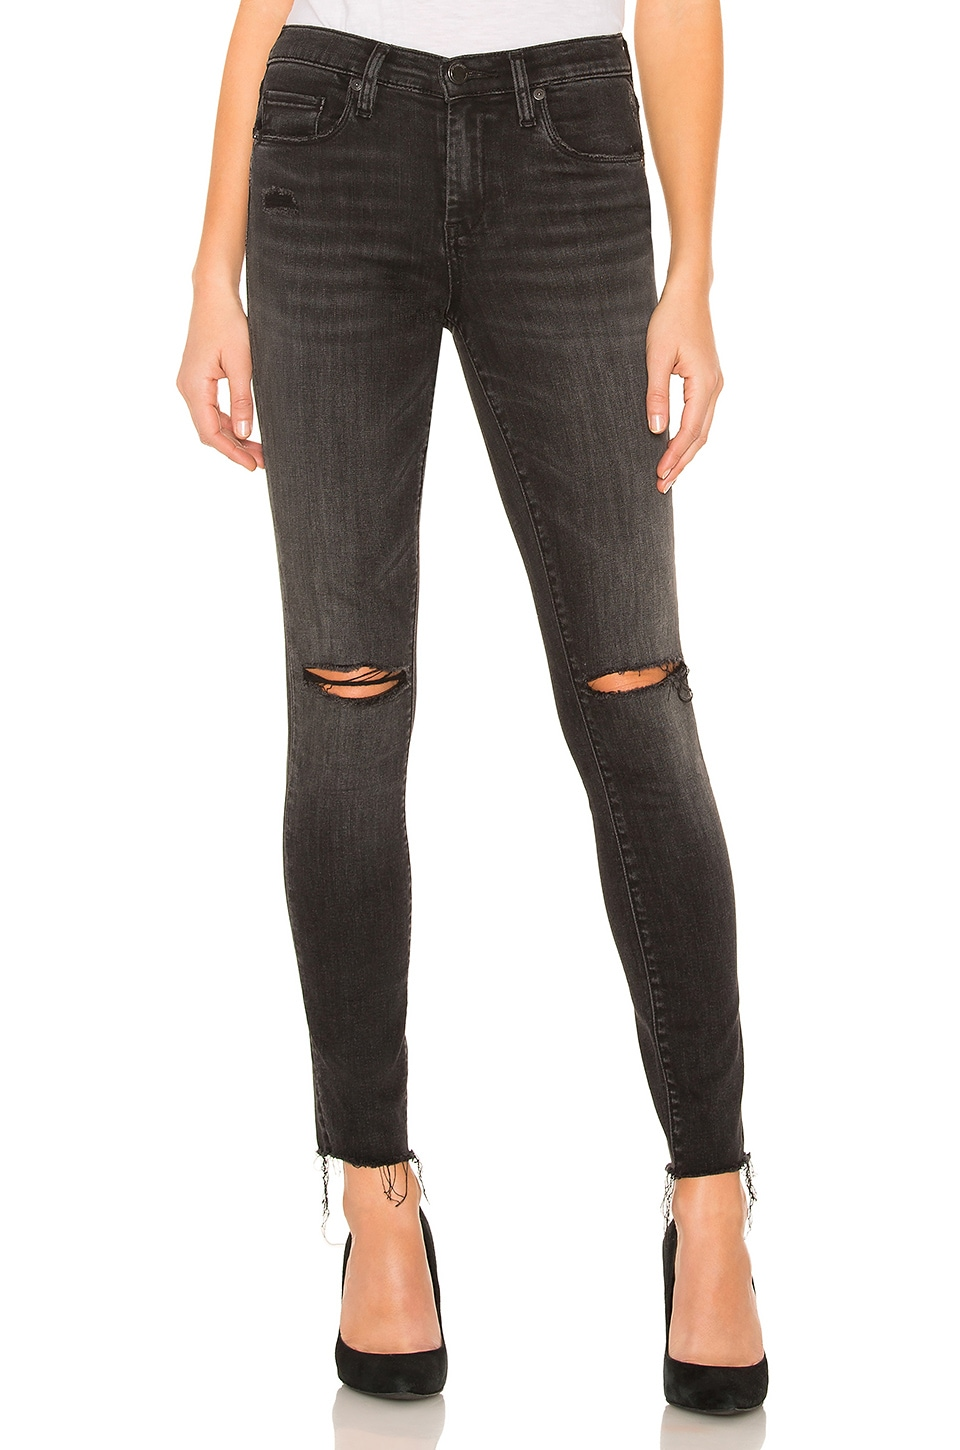 BLANKNYC Skinny Jean in Superwoman